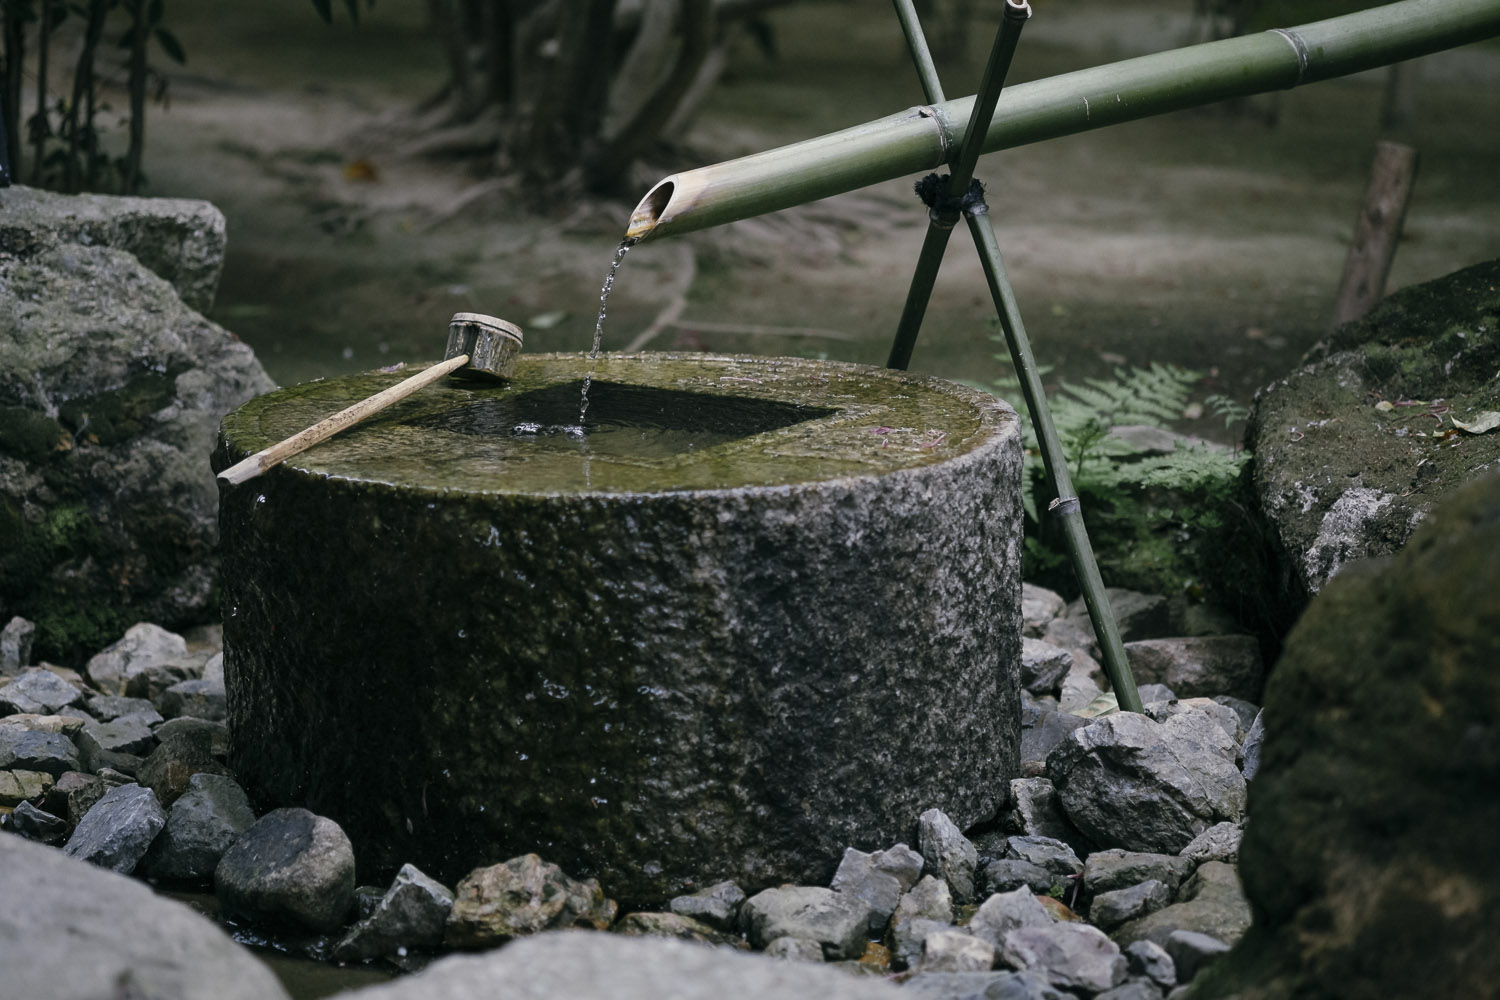 Tsukubai, a basin provided for ritual washing of the hands and mouth.